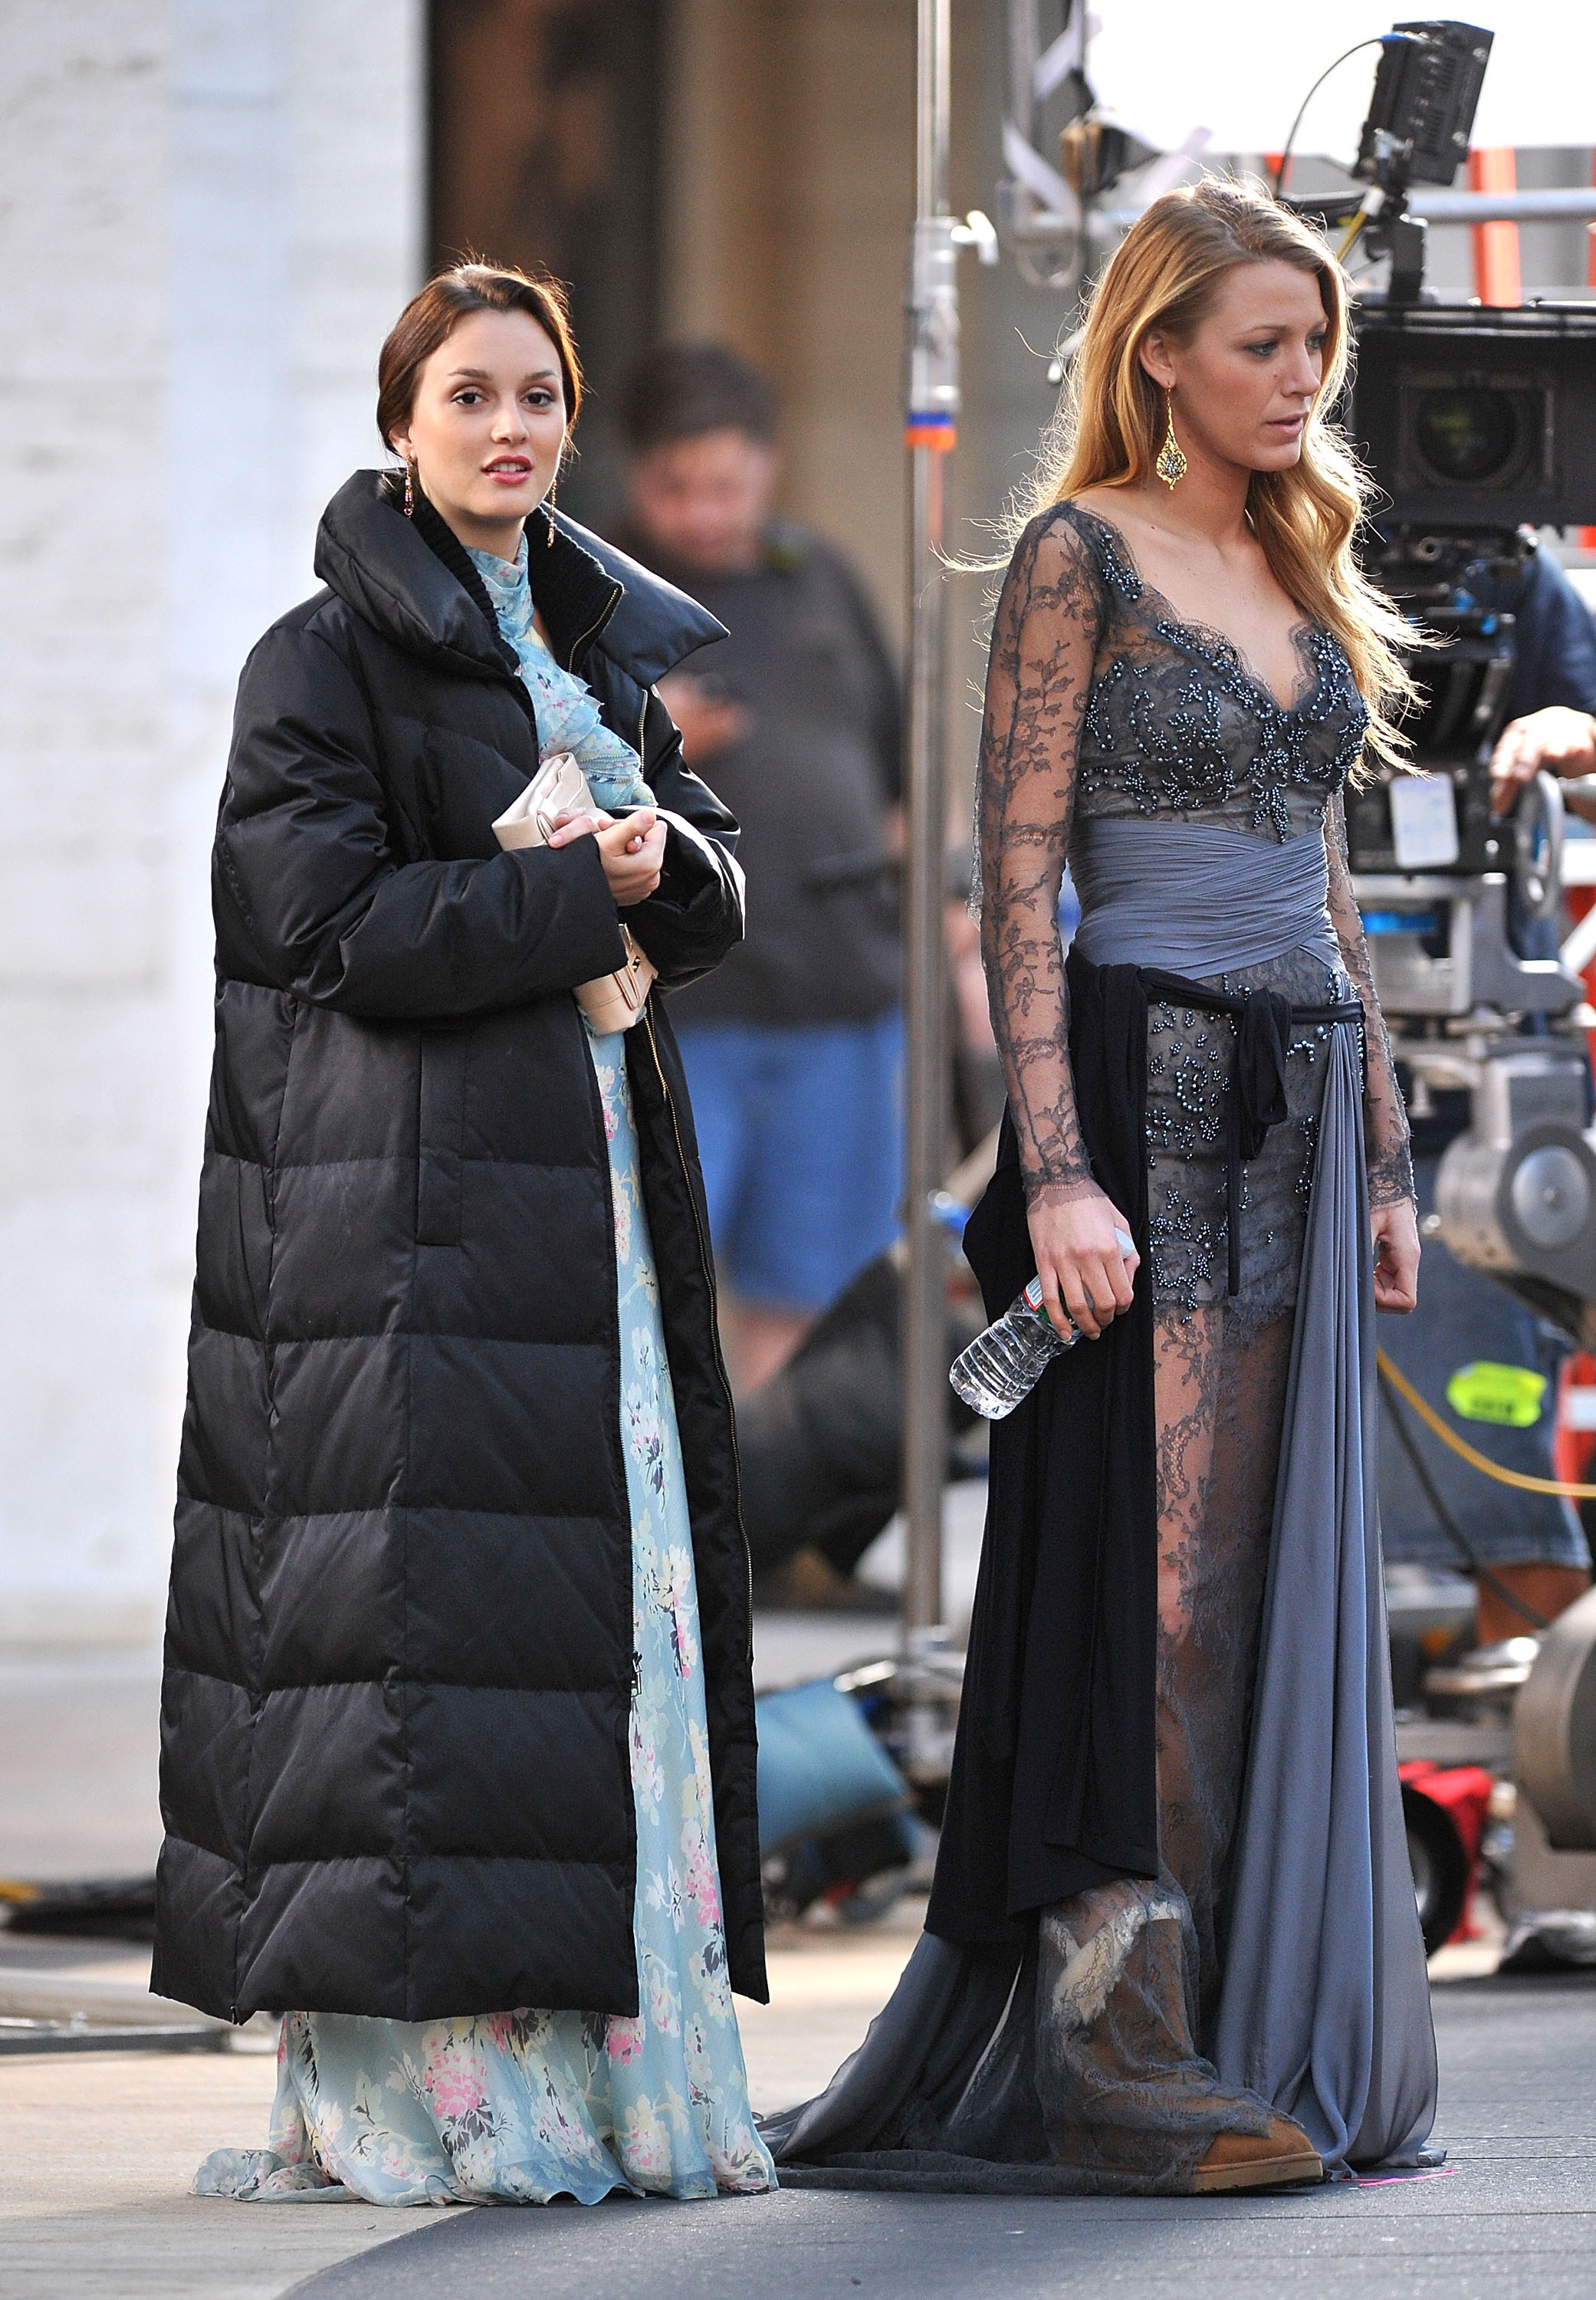 Dressed to impress, Queen Bee and her sidekick S — Leighton Meester and Blake Lively — stepped out in dramatic gowns for a September 2010 scene.